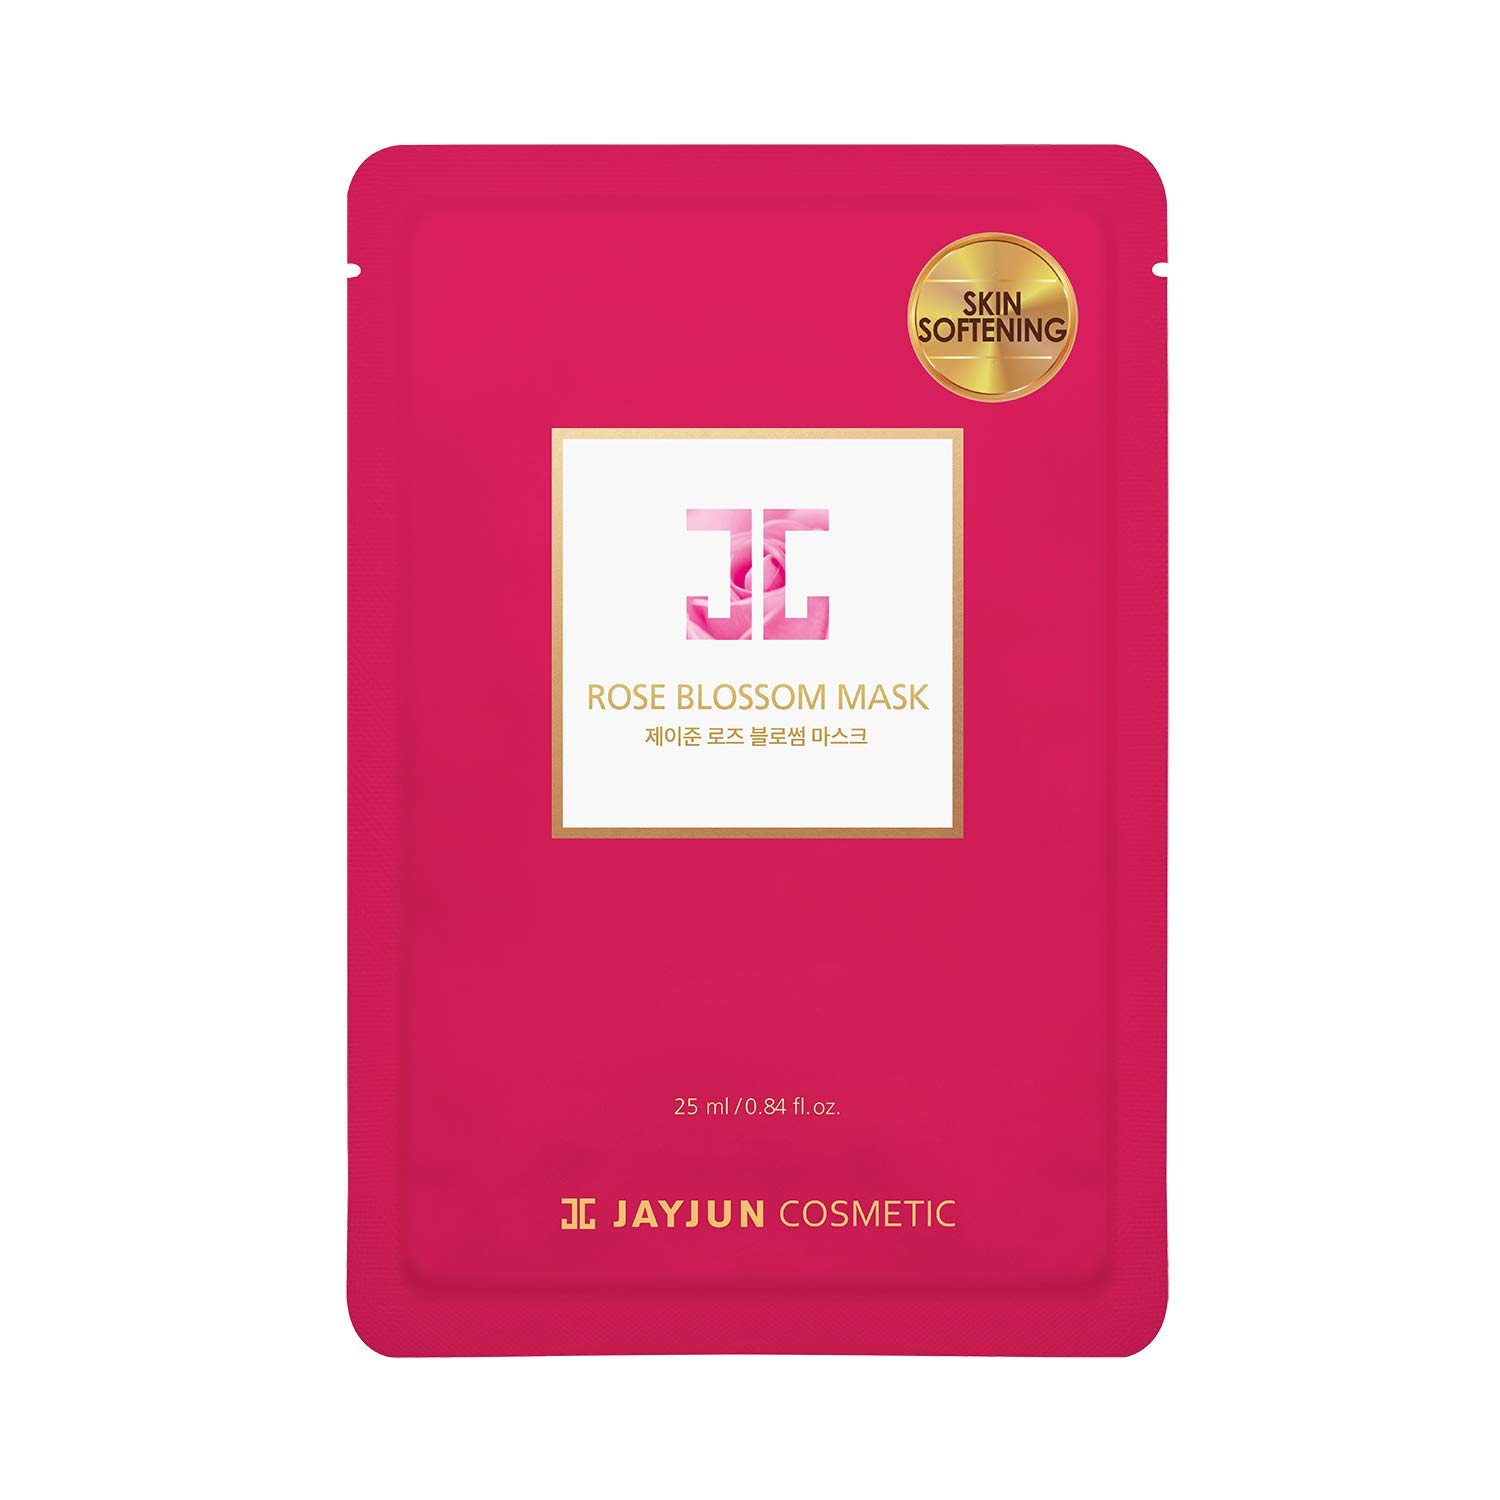 JAYJUN Rose Blossom Mask,Pack of 10 Sheets, 0.84 fl. oz,25ml, Rose, Hydrating, Brightening